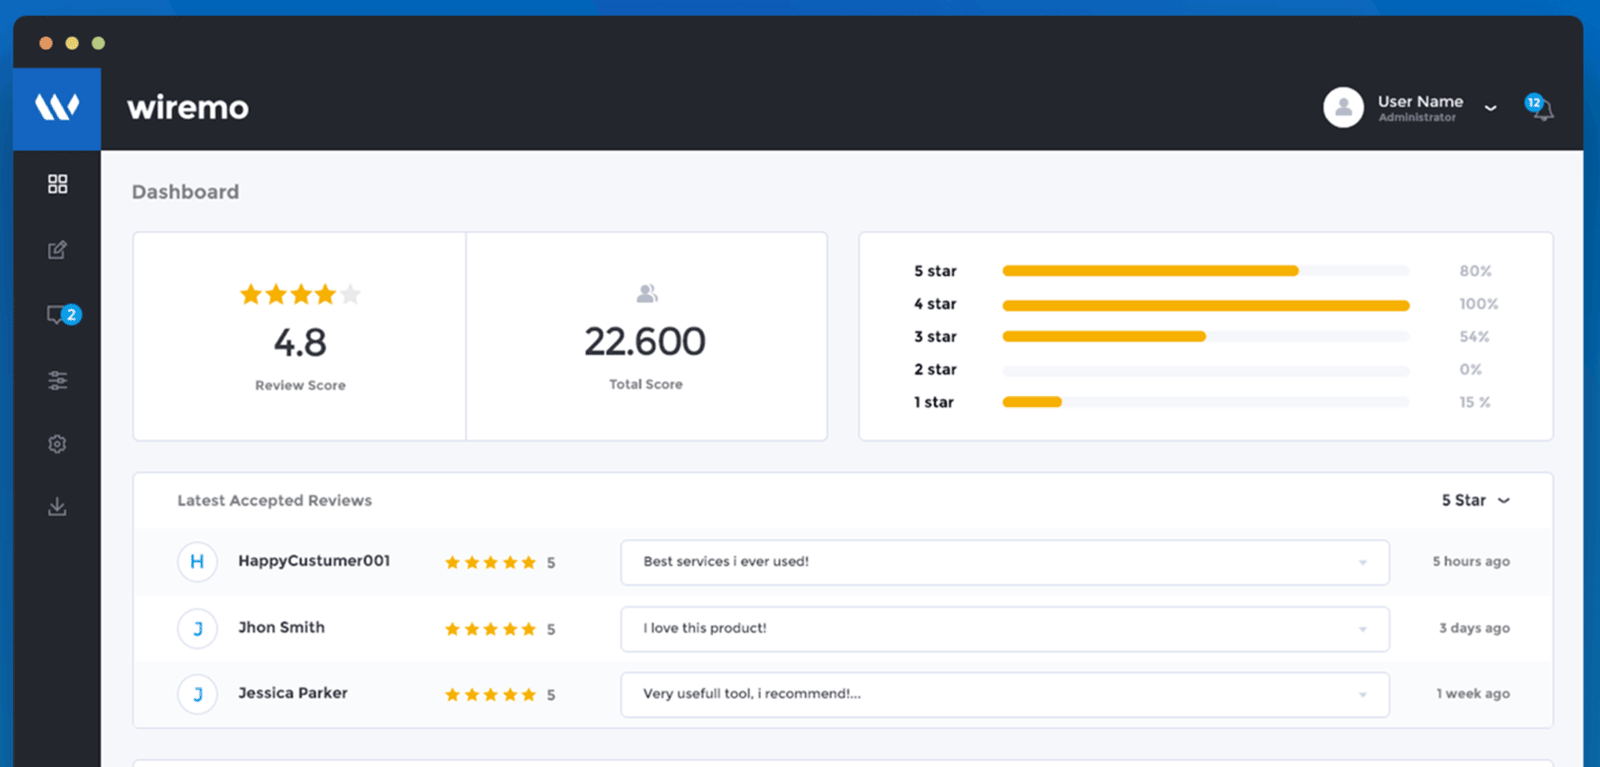 Wiremo Review Screenshot